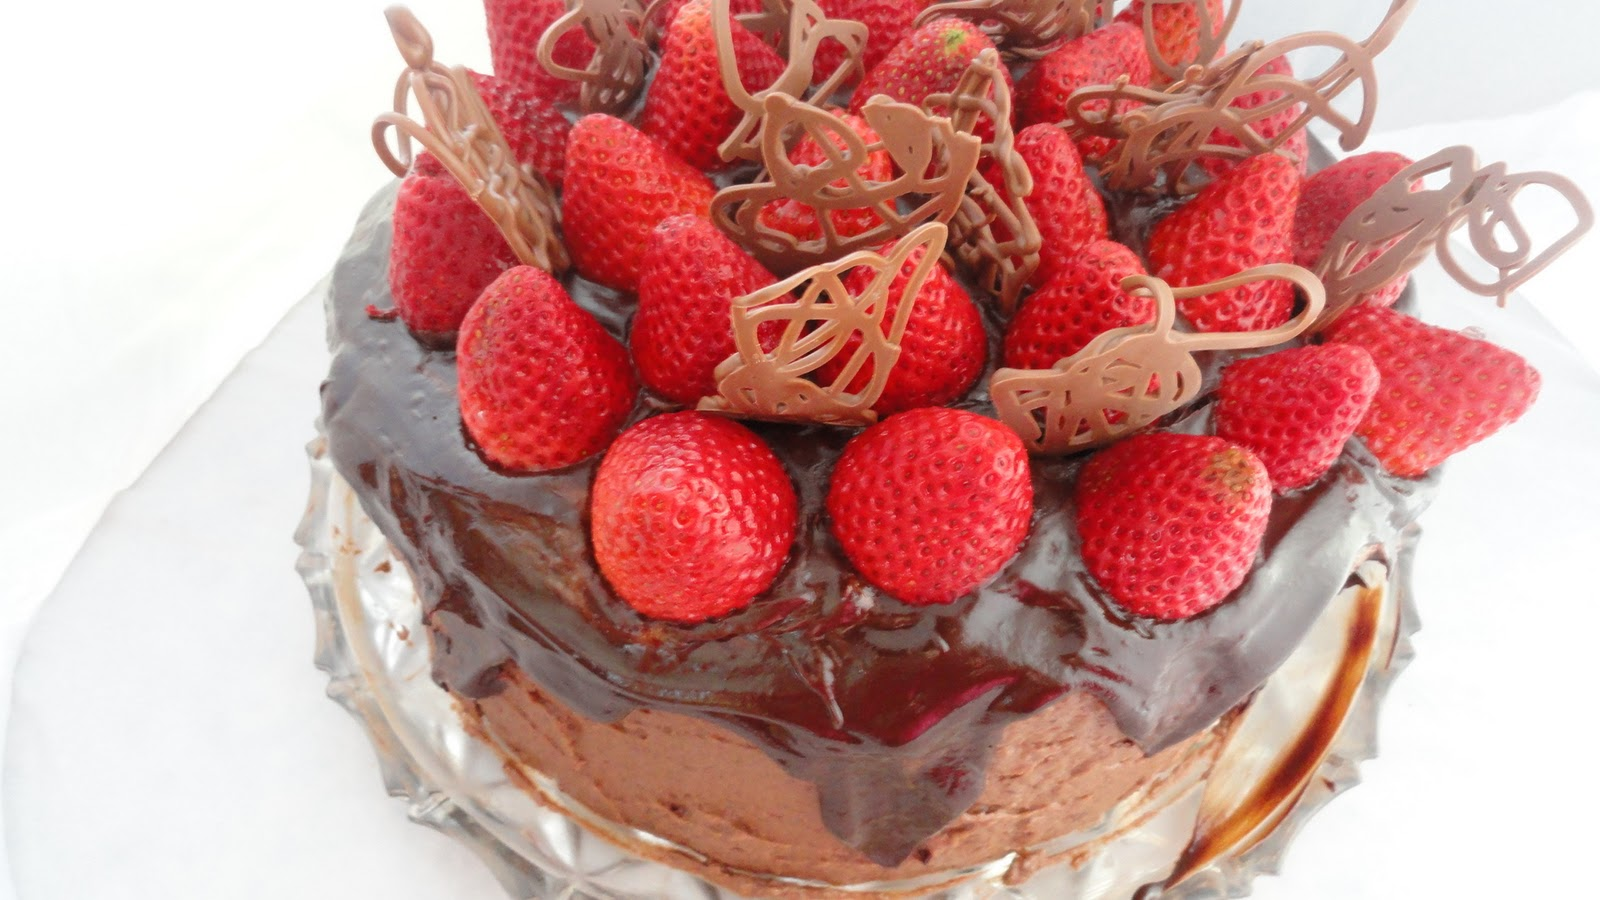 ... chocolate cake to devour on any day of the week- no celebration